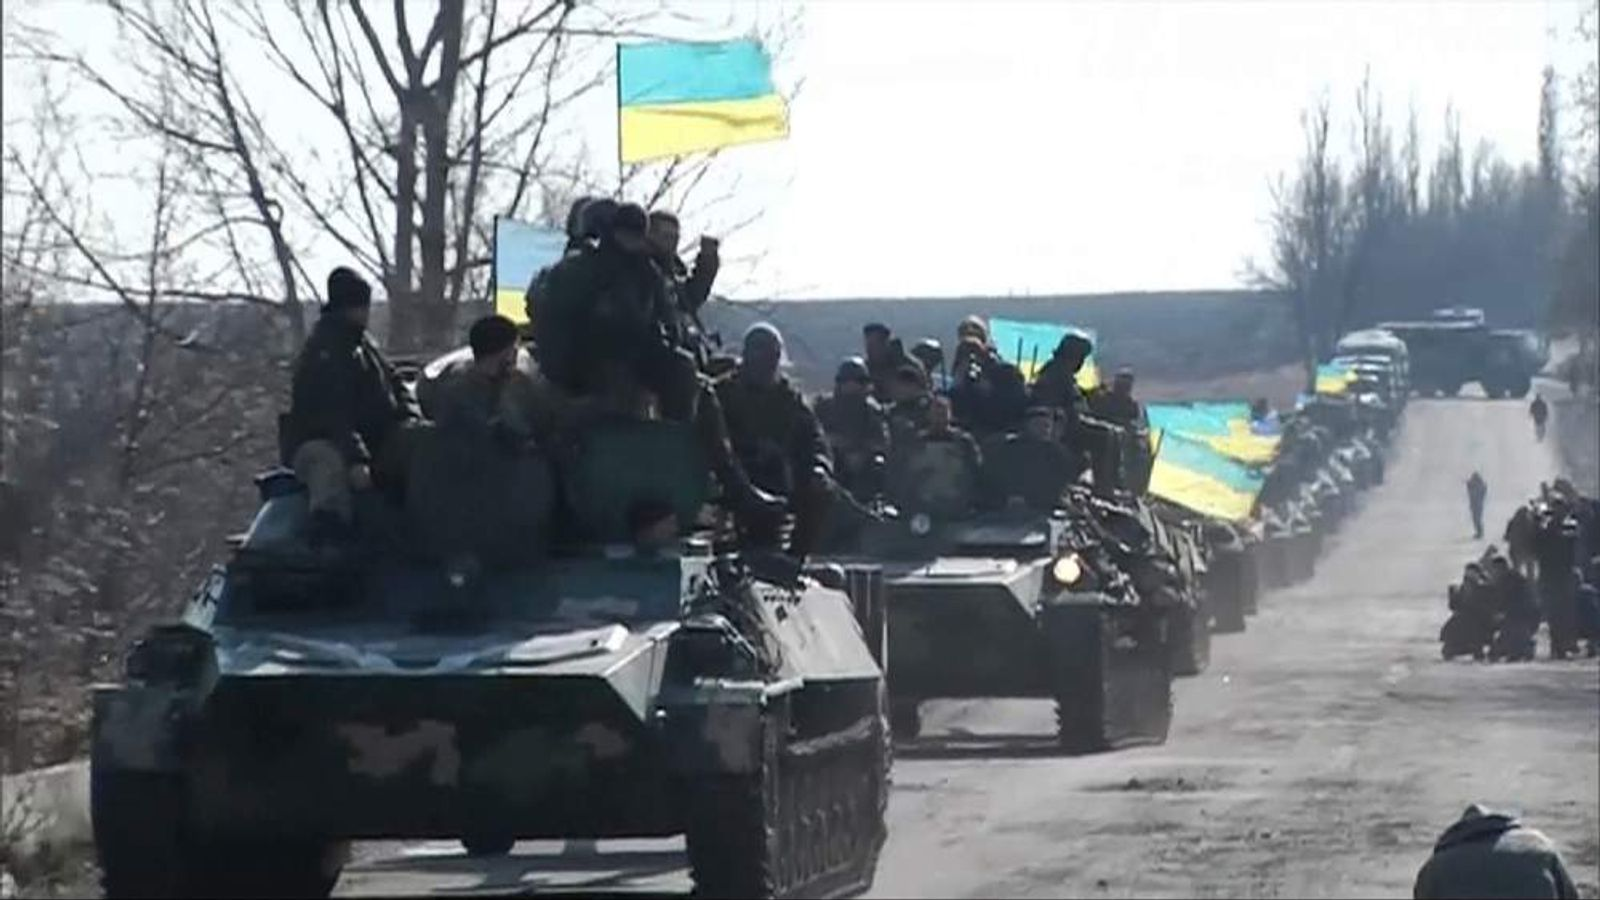 Ukrainian troops pull back from Artemivsk as part of ceasefire